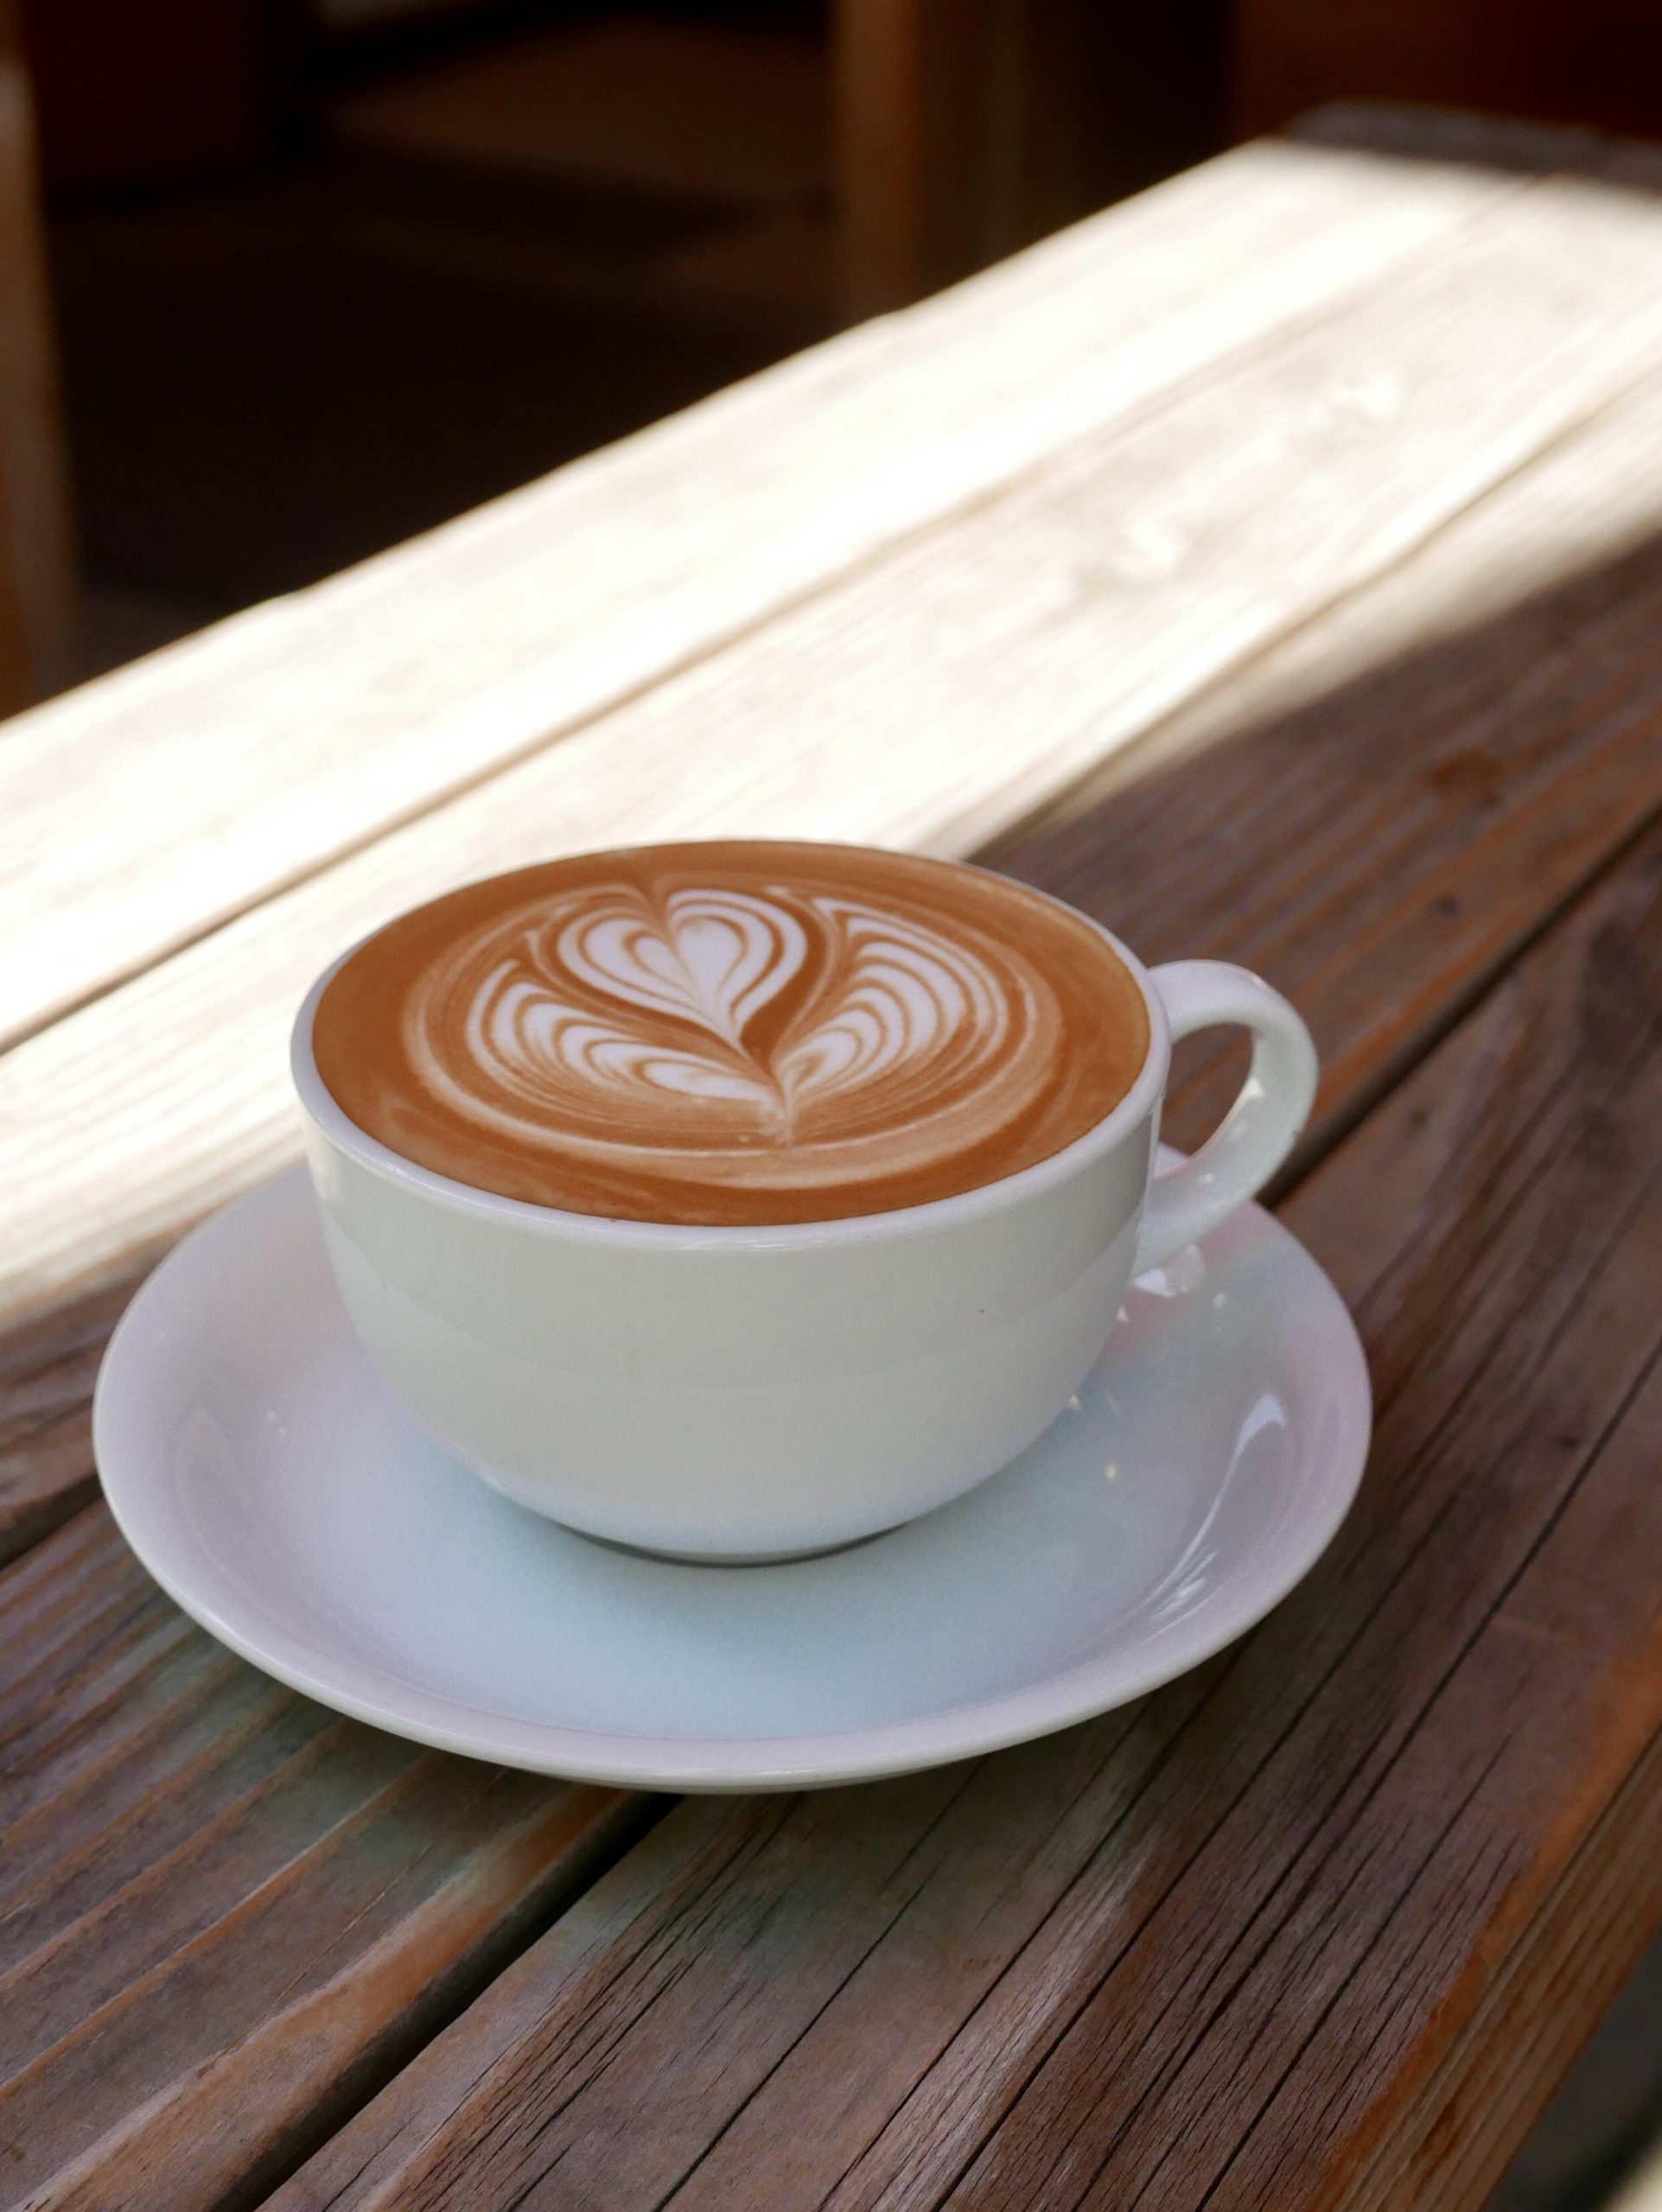 A lovely latte